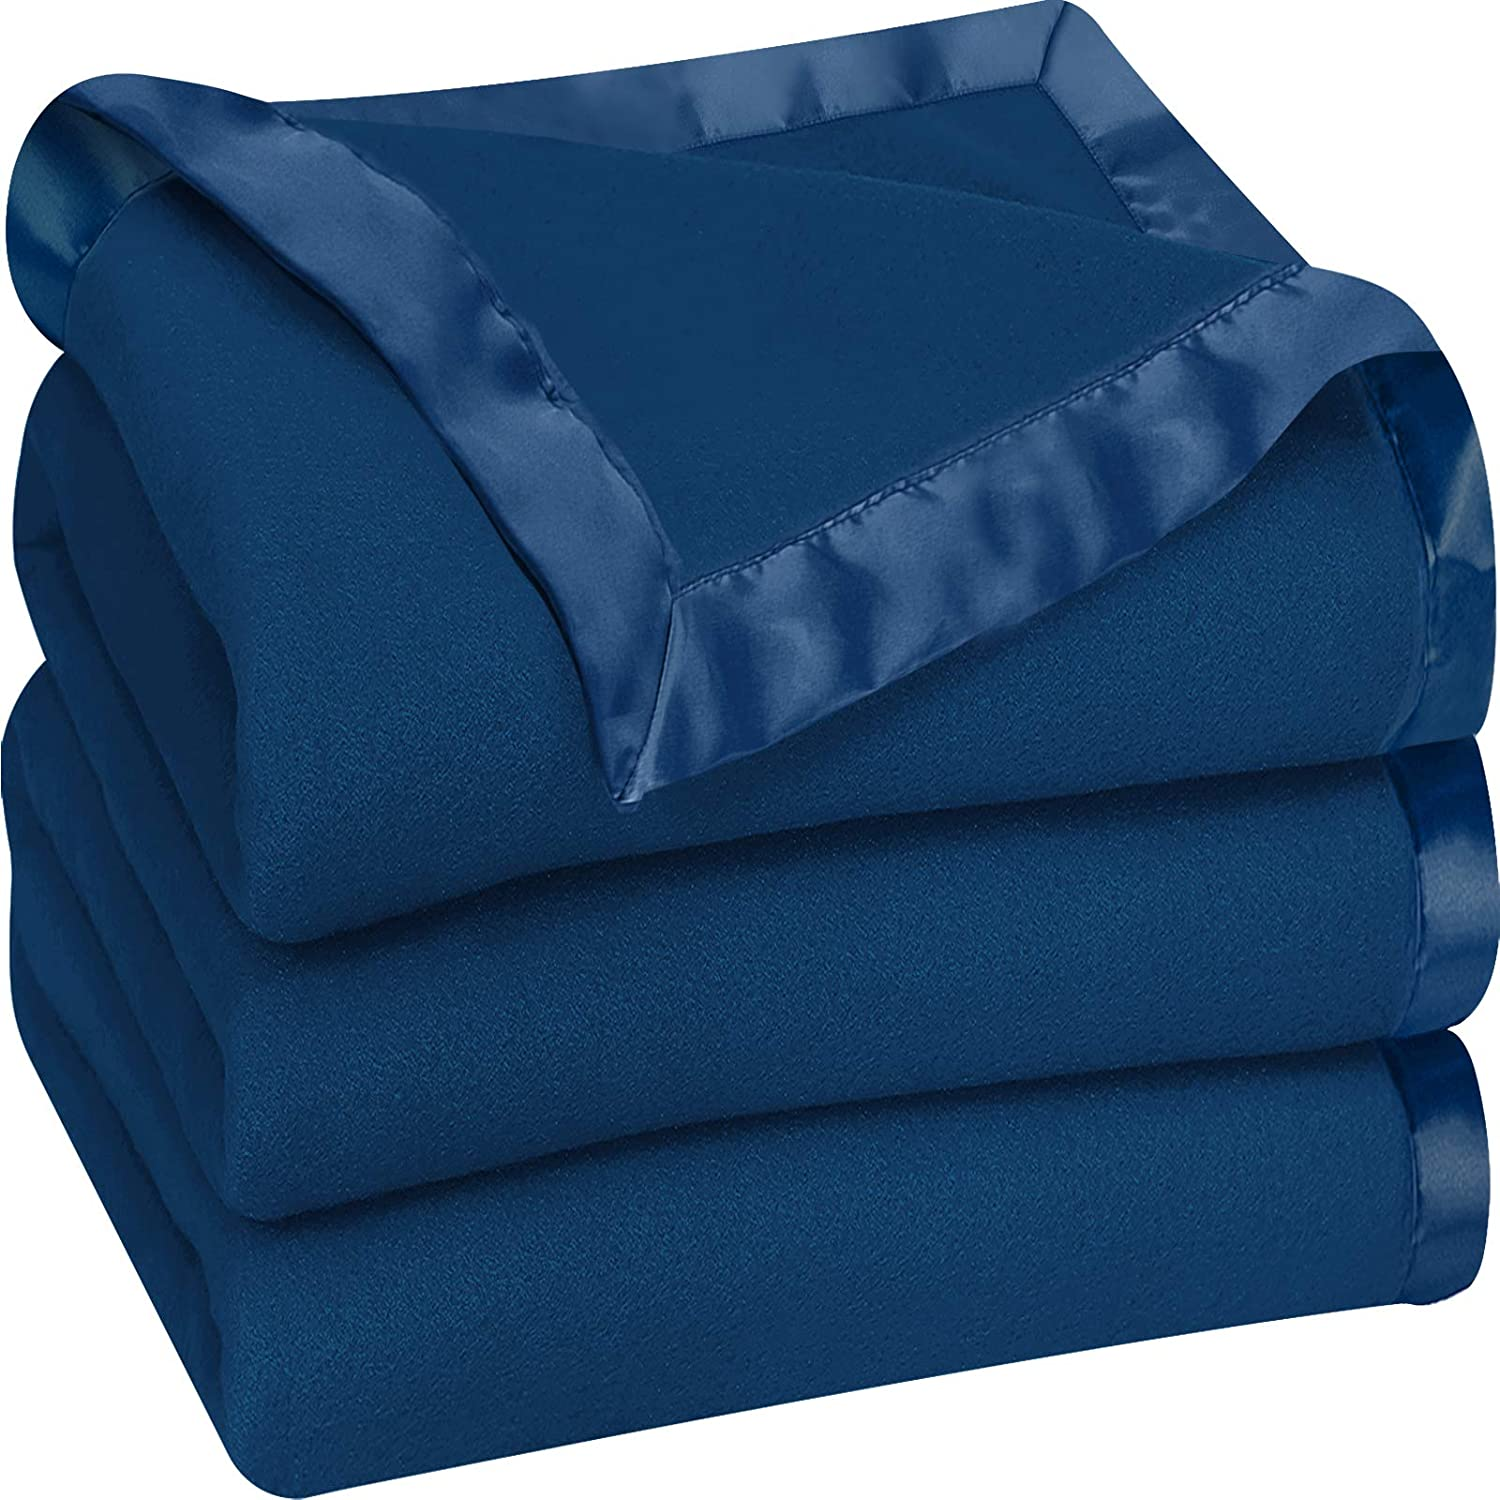 Utopia Bedding Fleece Blanket Twin Size Navy Soft Cozy Sateen Bed Blanket Microfiber